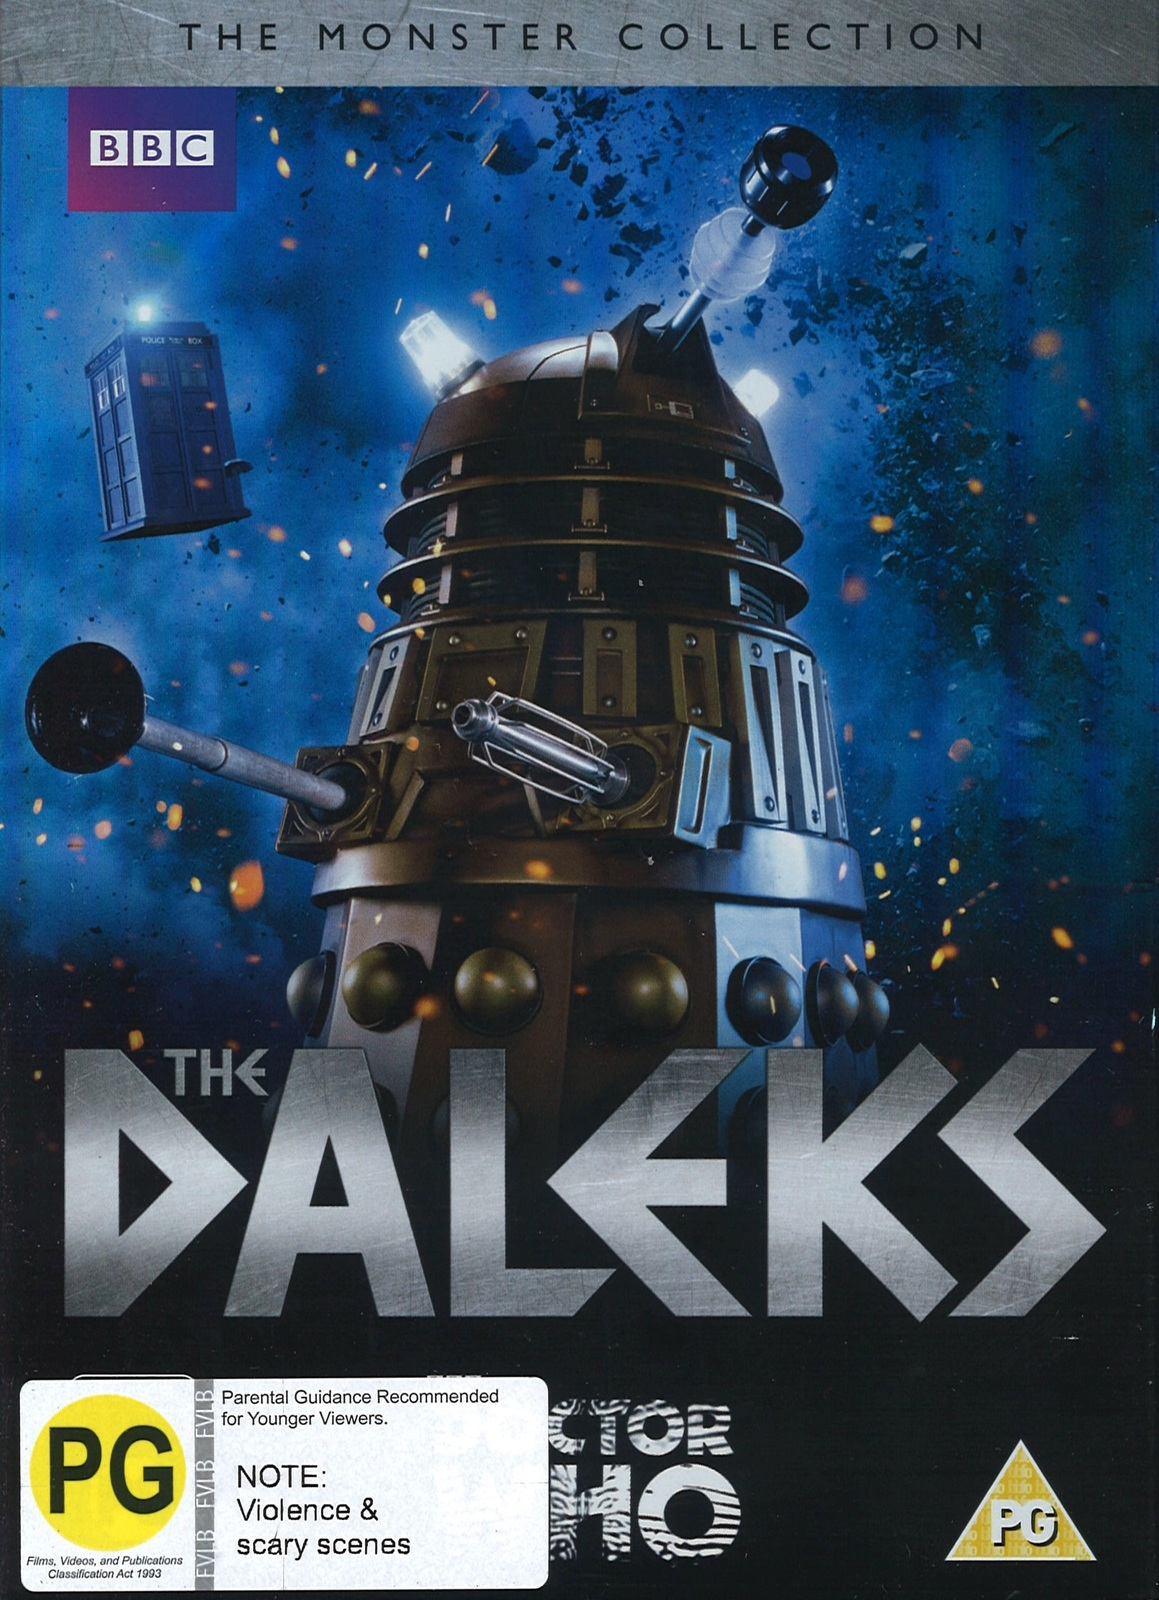 Doctor Who: The Monster Collection - The Daleks on DVD image